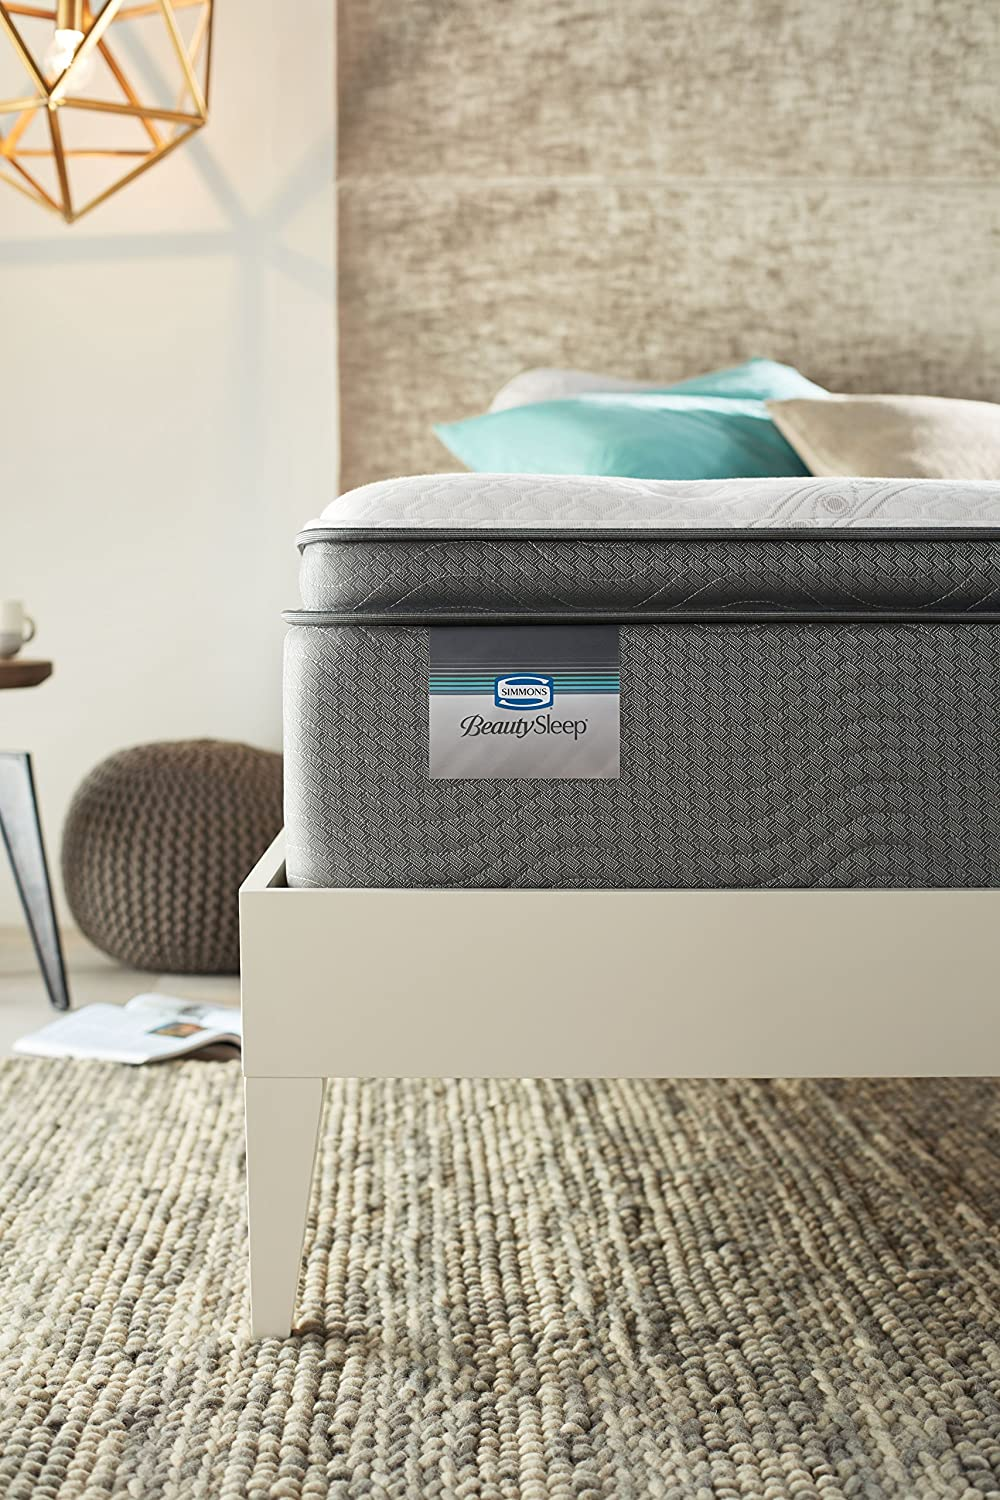 Amazon.com: Simmons BeautySleep Plush Pillow Top 450, Queen Innerspring Mattress: Kitchen & Dining